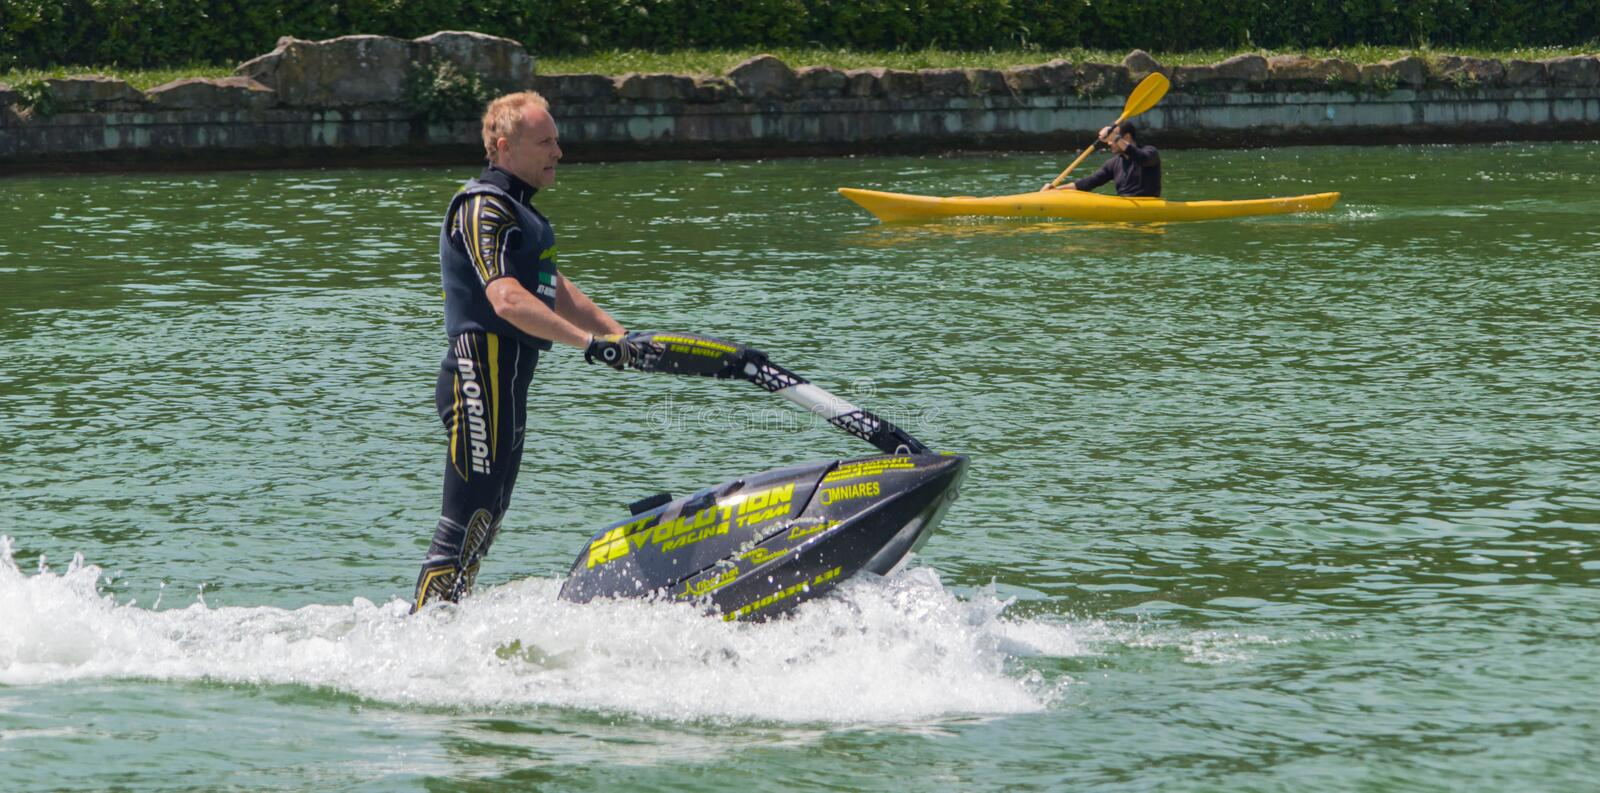 Download Roberto Mariani Jet-ski editorial stock image. Image of competition - 30711384